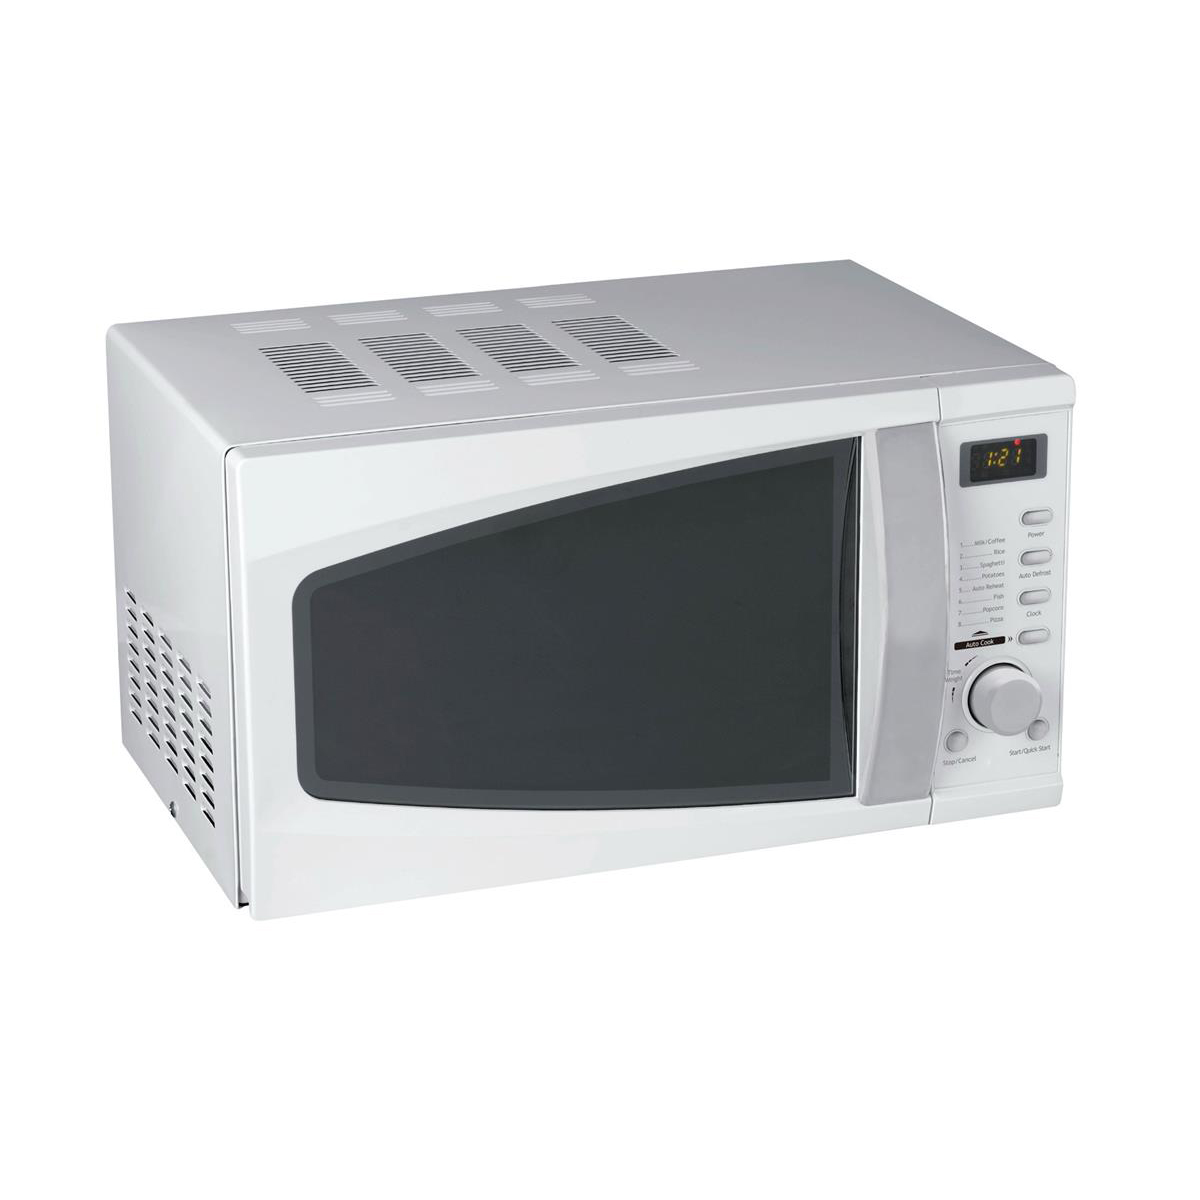 Kitchen Appliances 5 Star Facilities Microwave Oven 800W Digital 20 Litre Silver